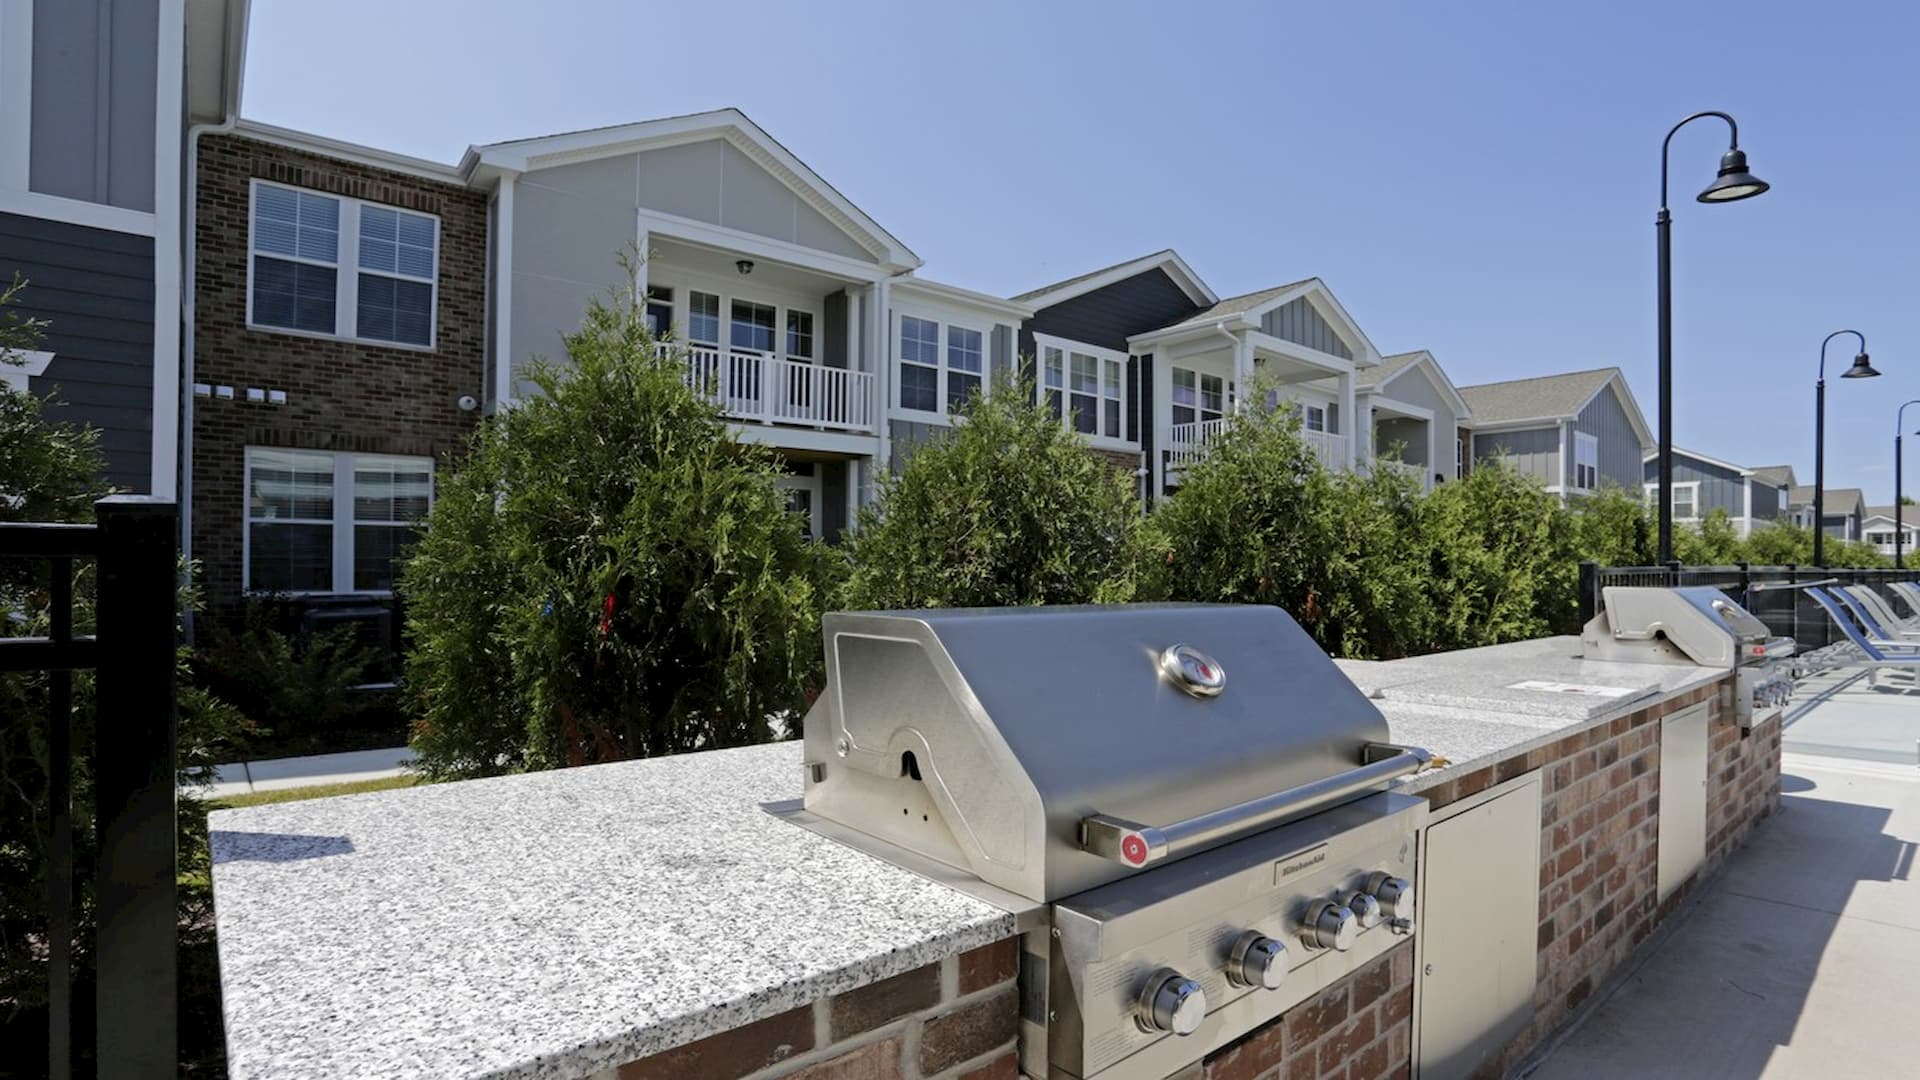 springs-at-south-elgin-south-elgin-il-grilling-station